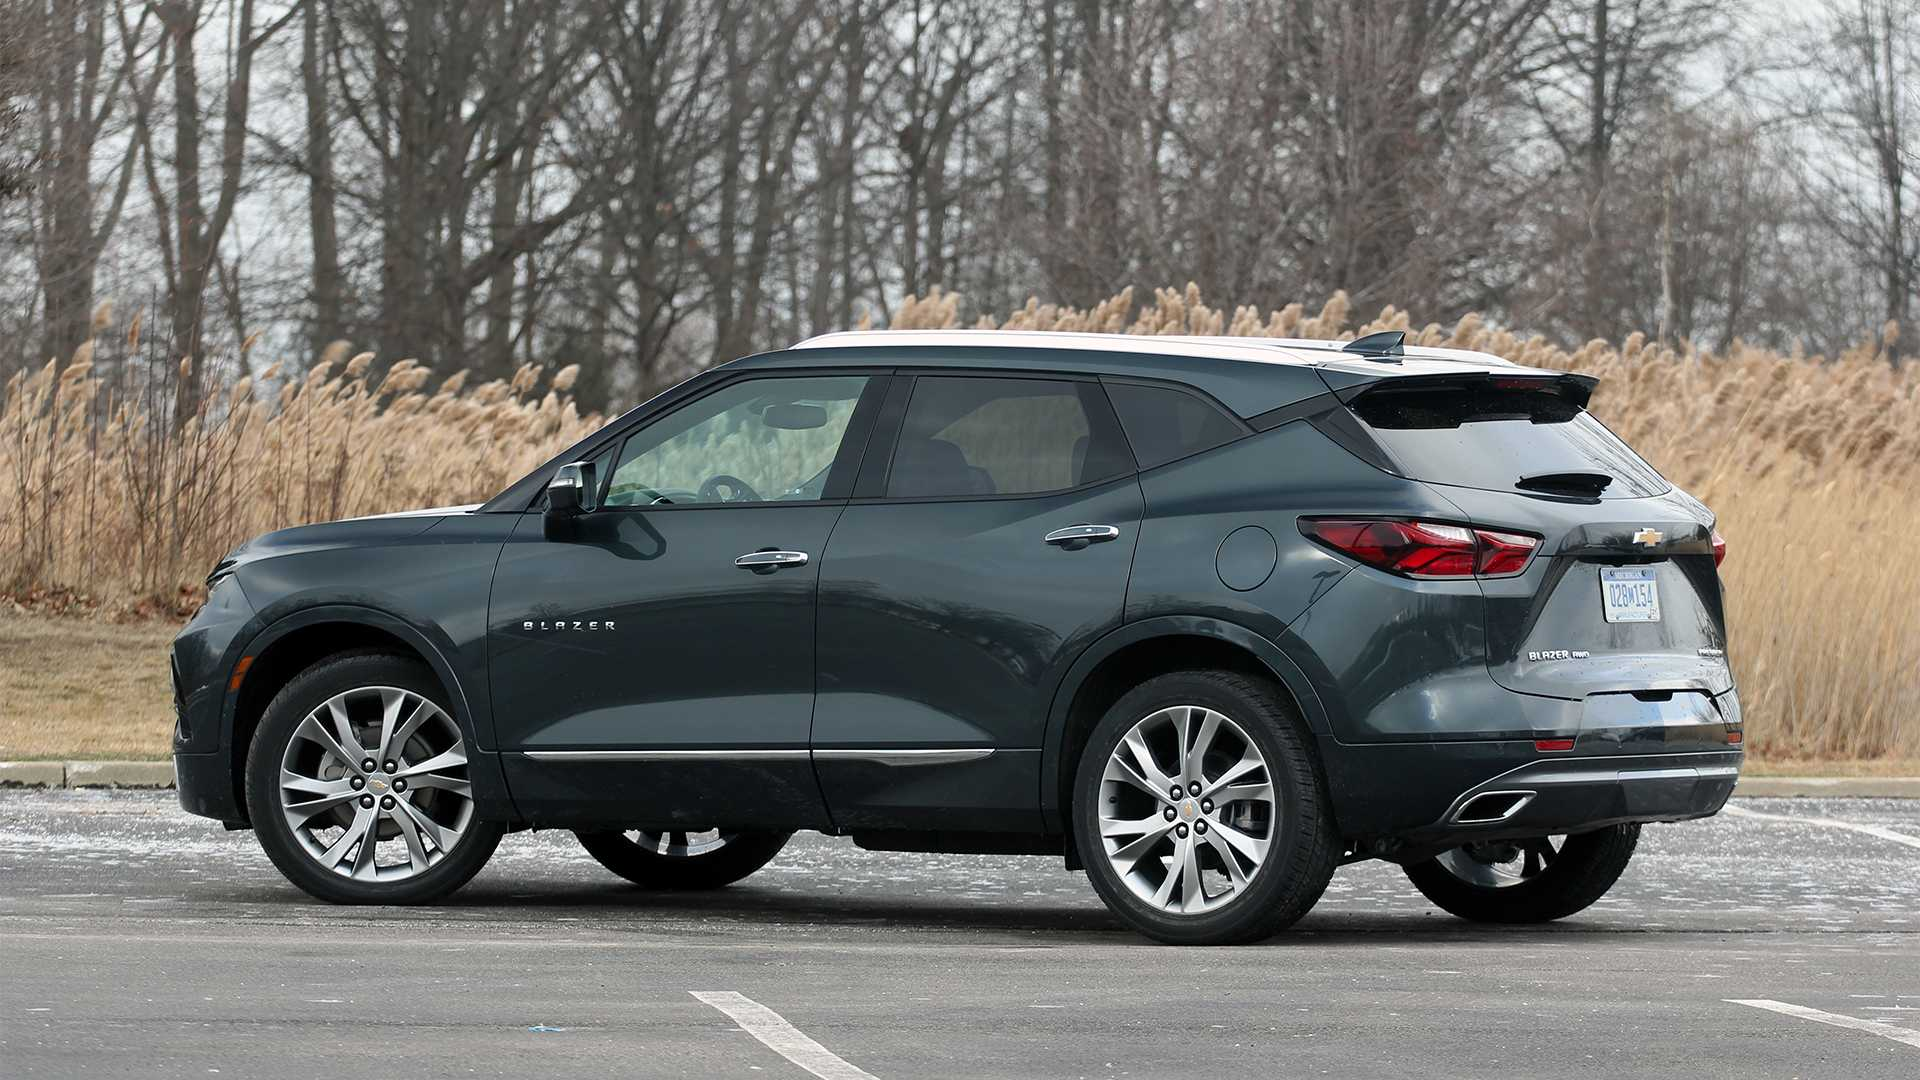 2019 Chevy Blazer Premier Awd Review Camaro Utility Vehicle